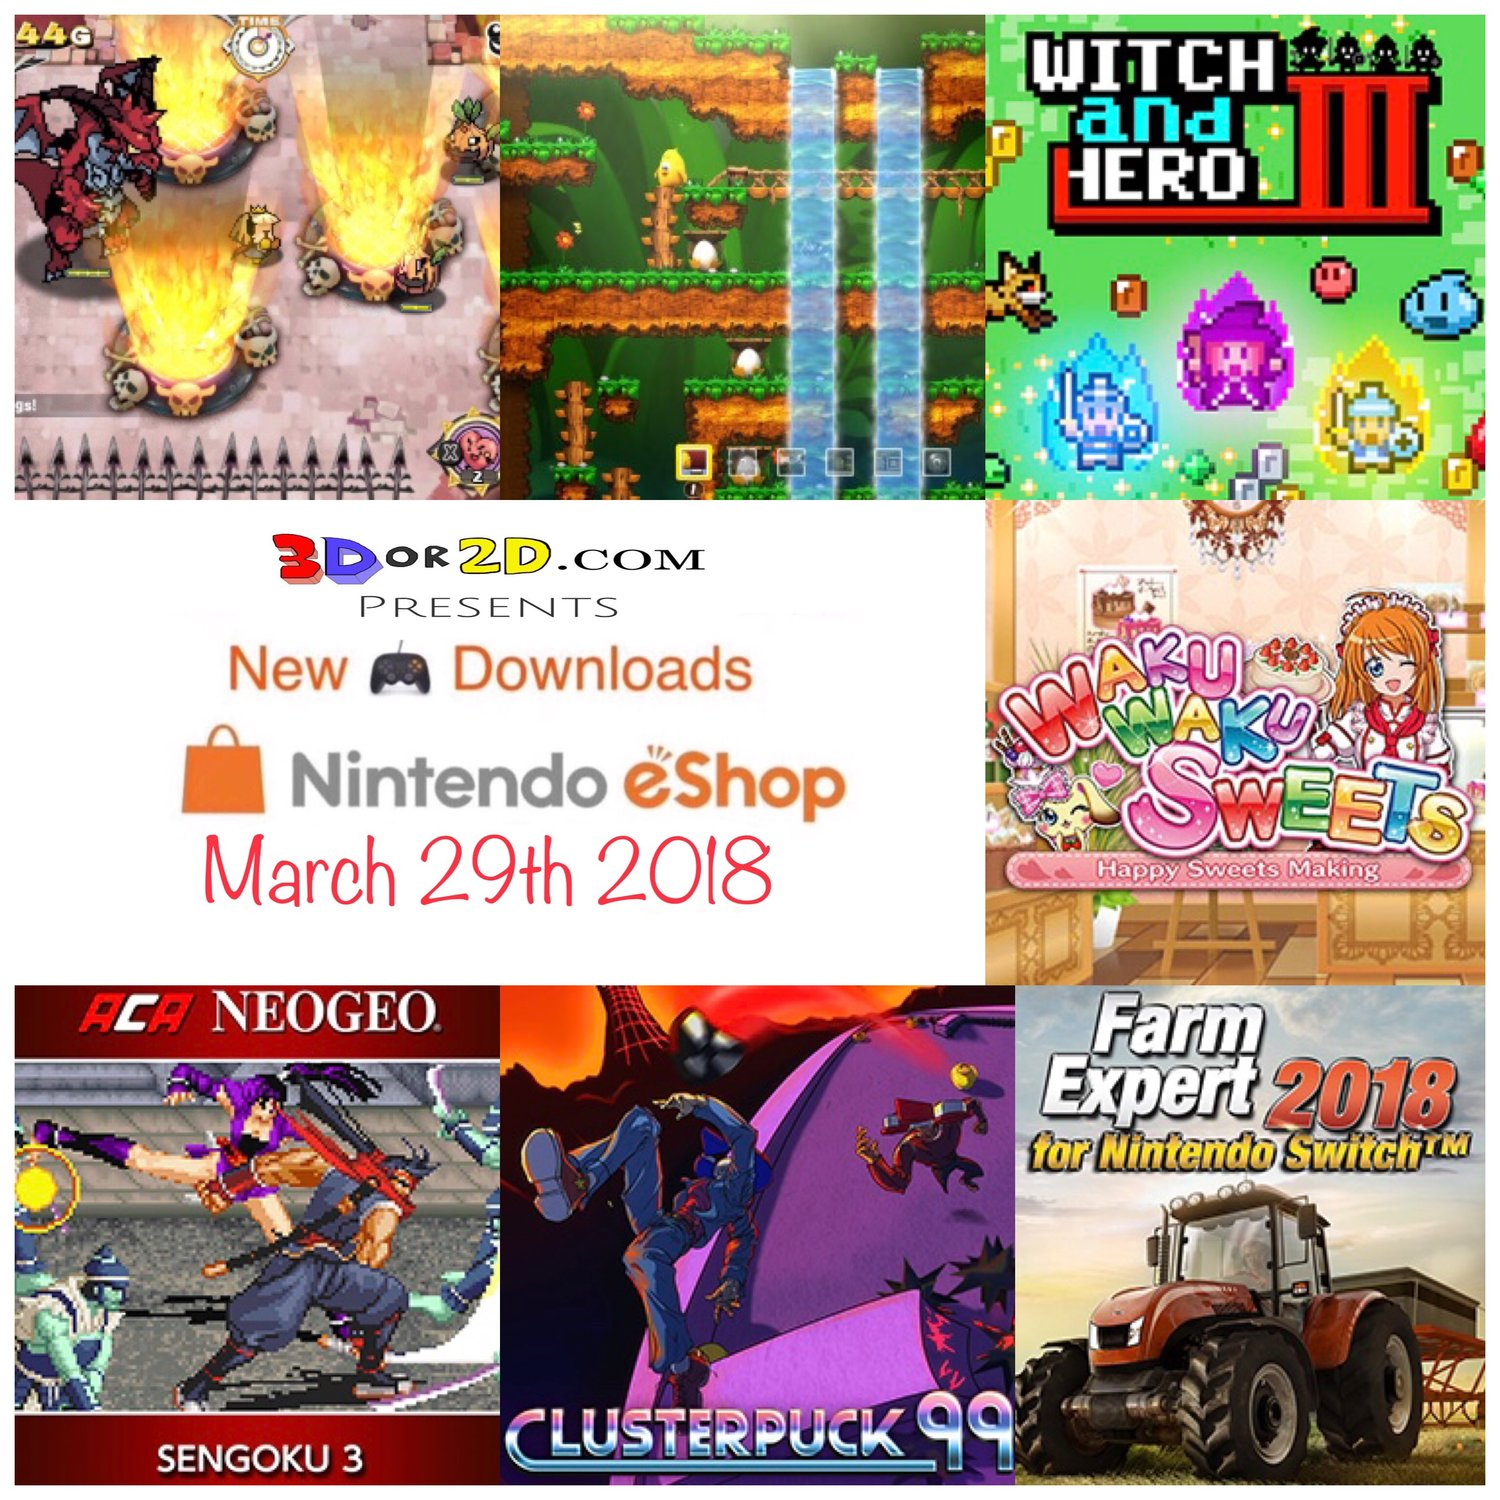 Nintendo Eshop downloads for March 29th 2018 — 3Dor2D com